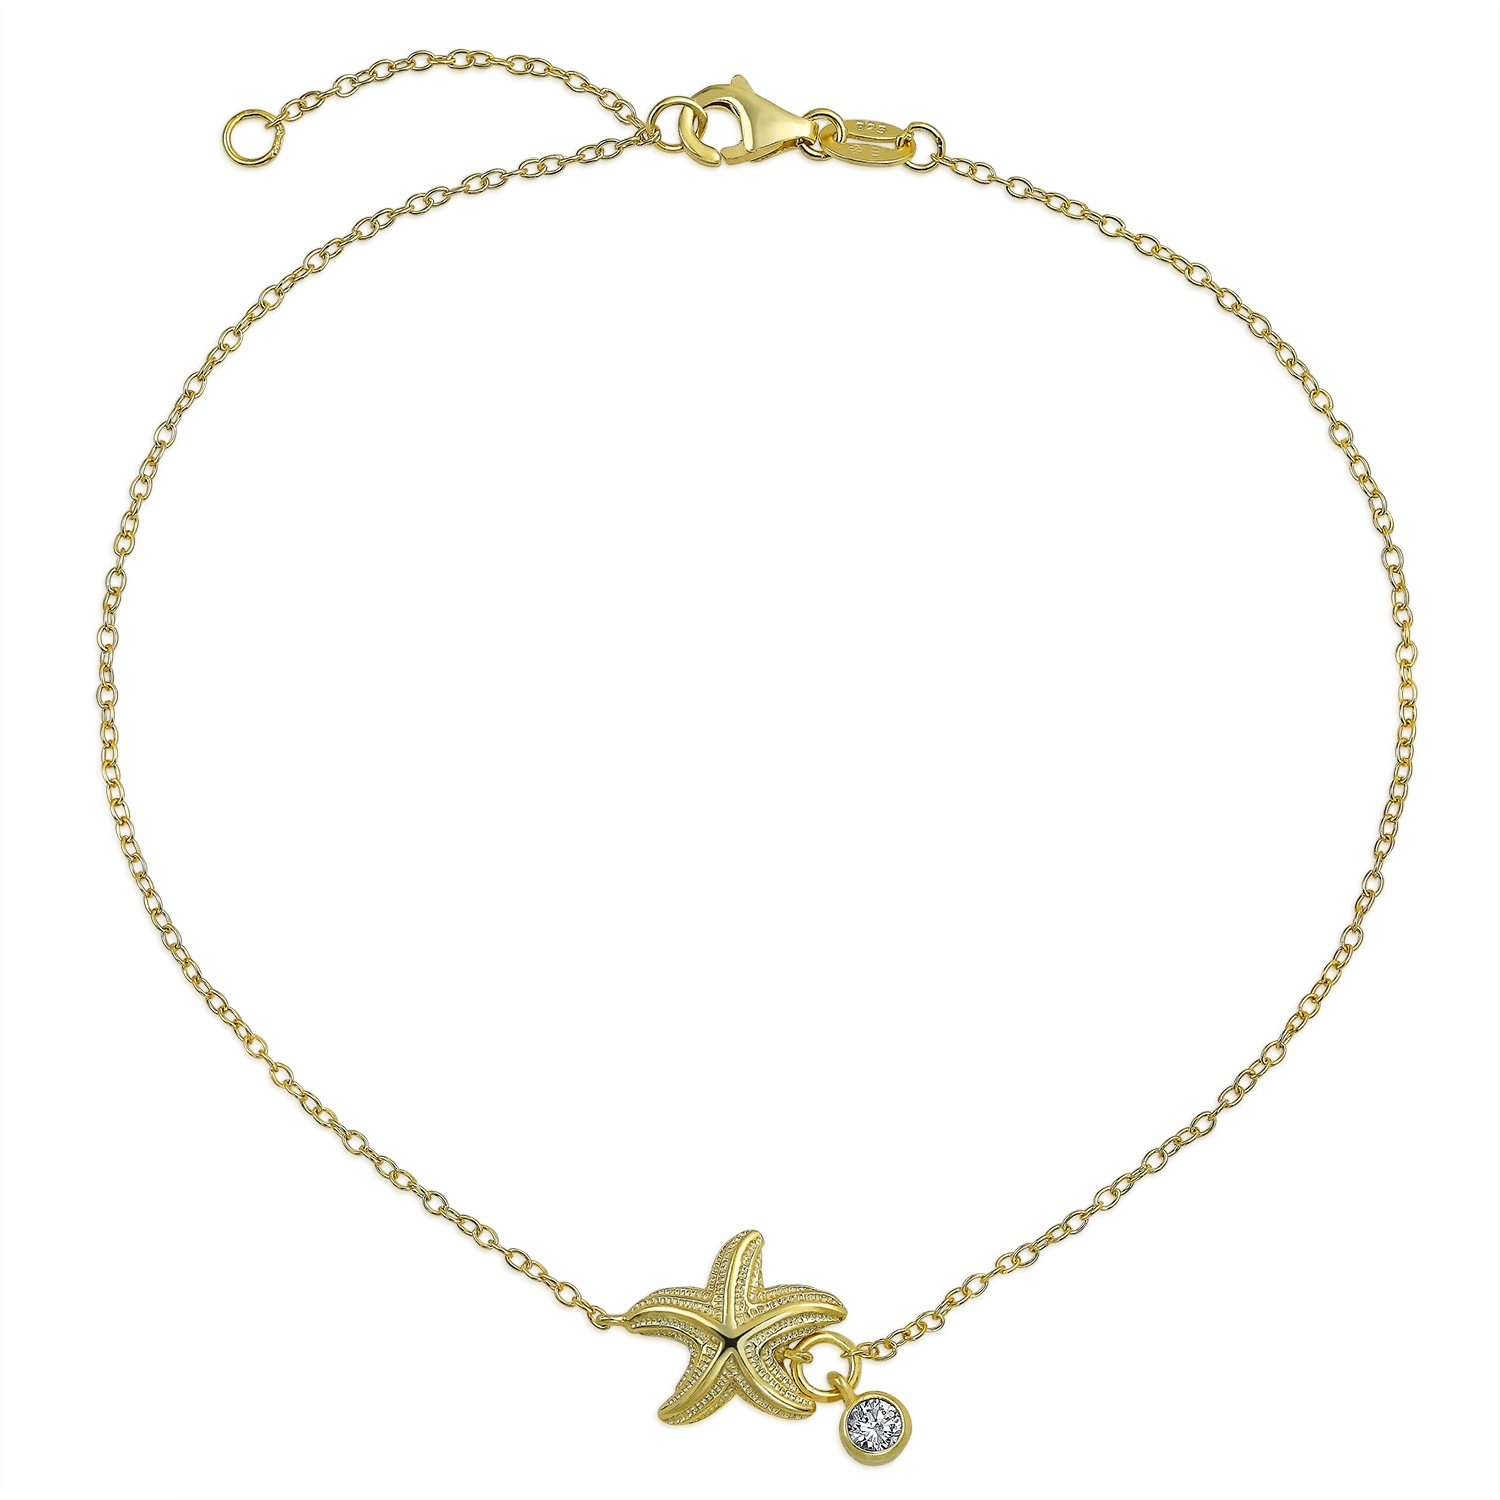 Bling Jewelry Gold Plated .925 Silver Nautical Starfish Anklet CZ Charm 9in PFS-54-0362-G